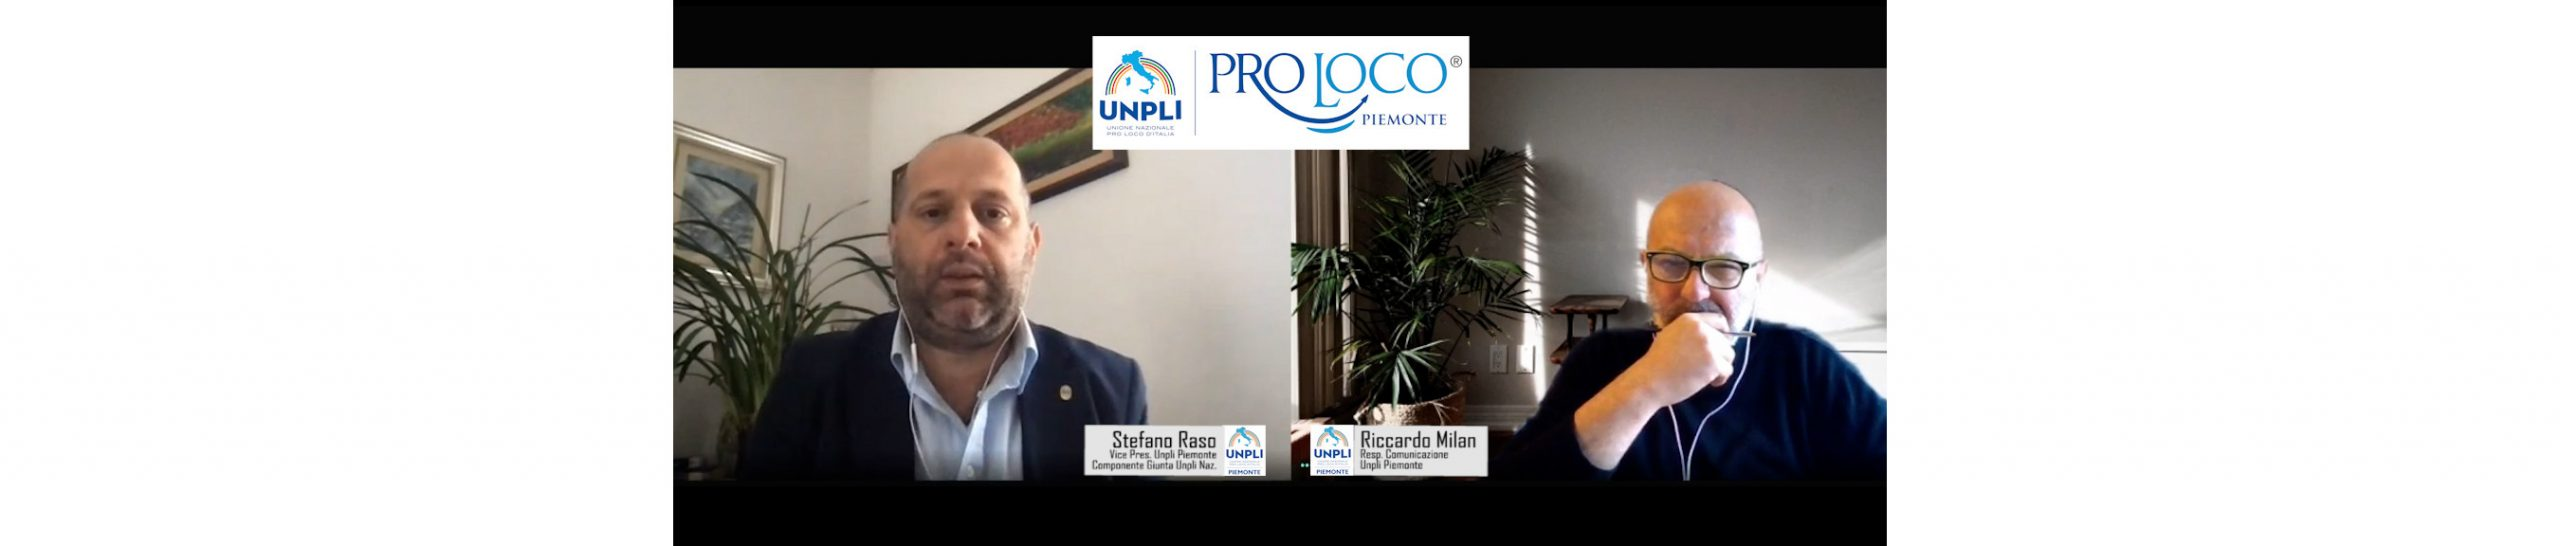 Dipartimenti: come sta agendo l'Unpli. Video intervista a Stefano Raso